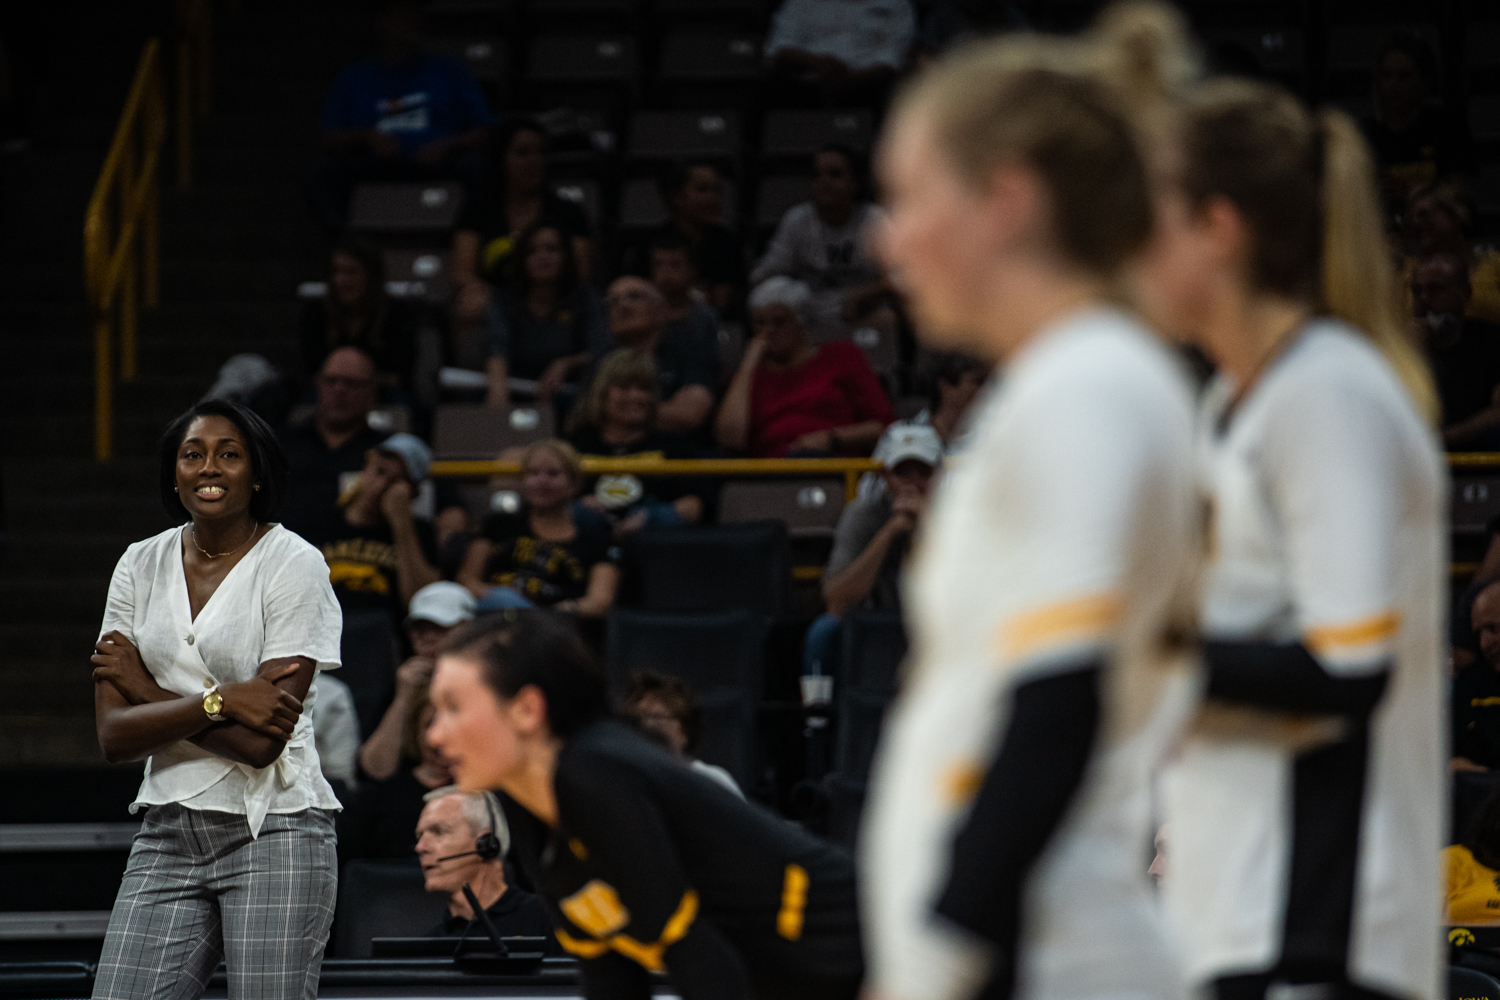 Iowa+interim+head+coach+Vicki+Brown+watches+her+players+during+a+volleyball+match+between+Iowa+and+Colorado+in+Carver-Hawkeye+Arena+on+Friday%2C+September+6%2C+2019.+The+Hawkeyes+dropped+their+season+opener+to+the+Buffaloes%2C+3-0.